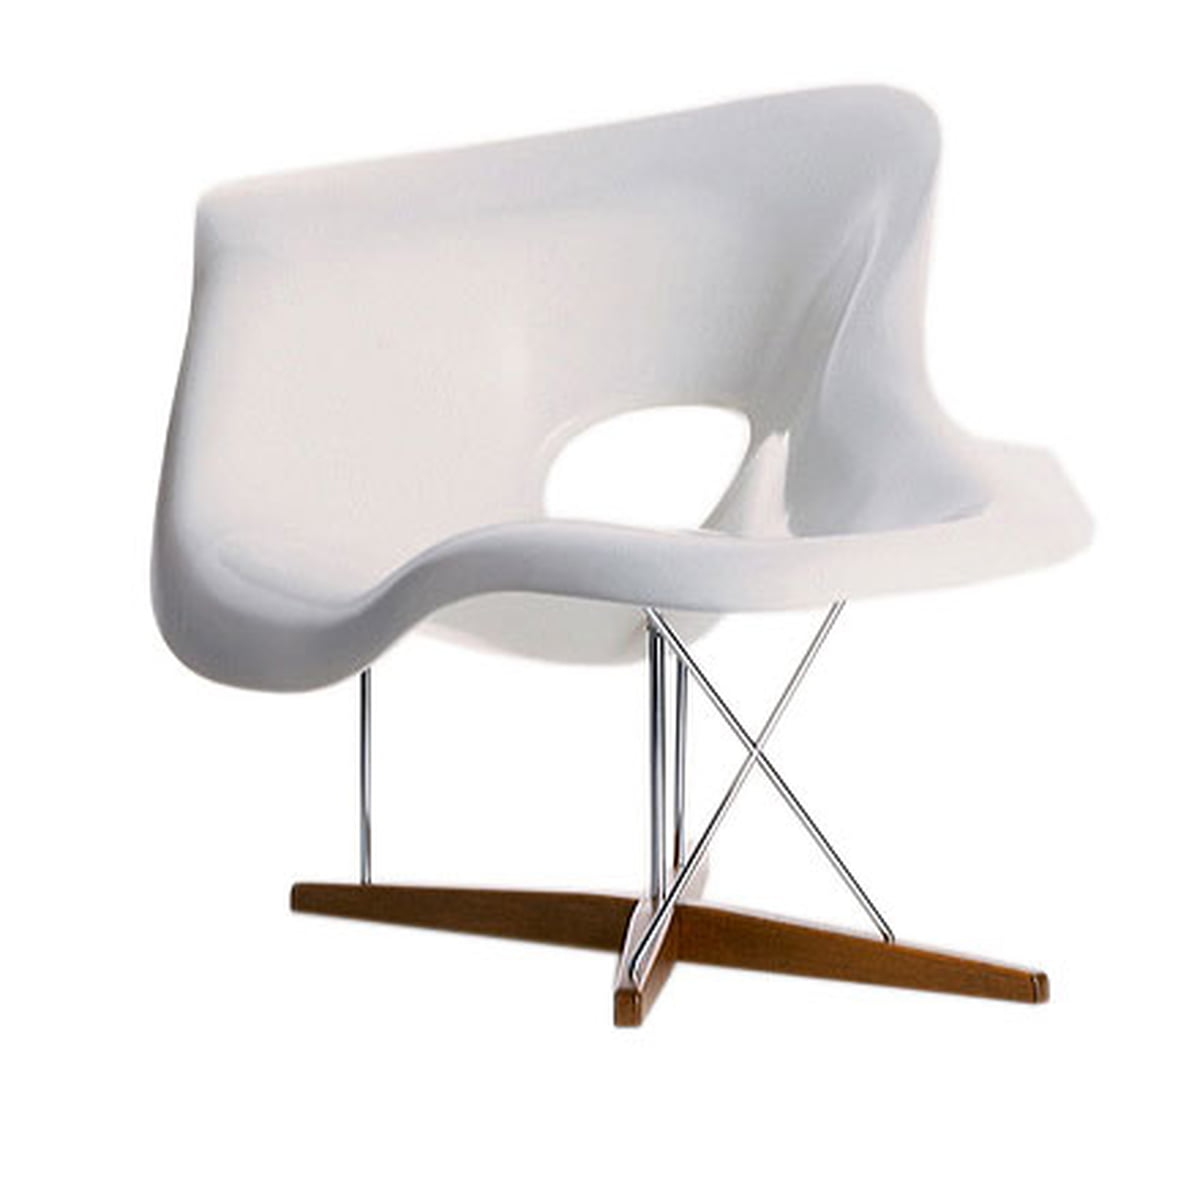 La chaise vitra shop for Chaise bascule eames vitra